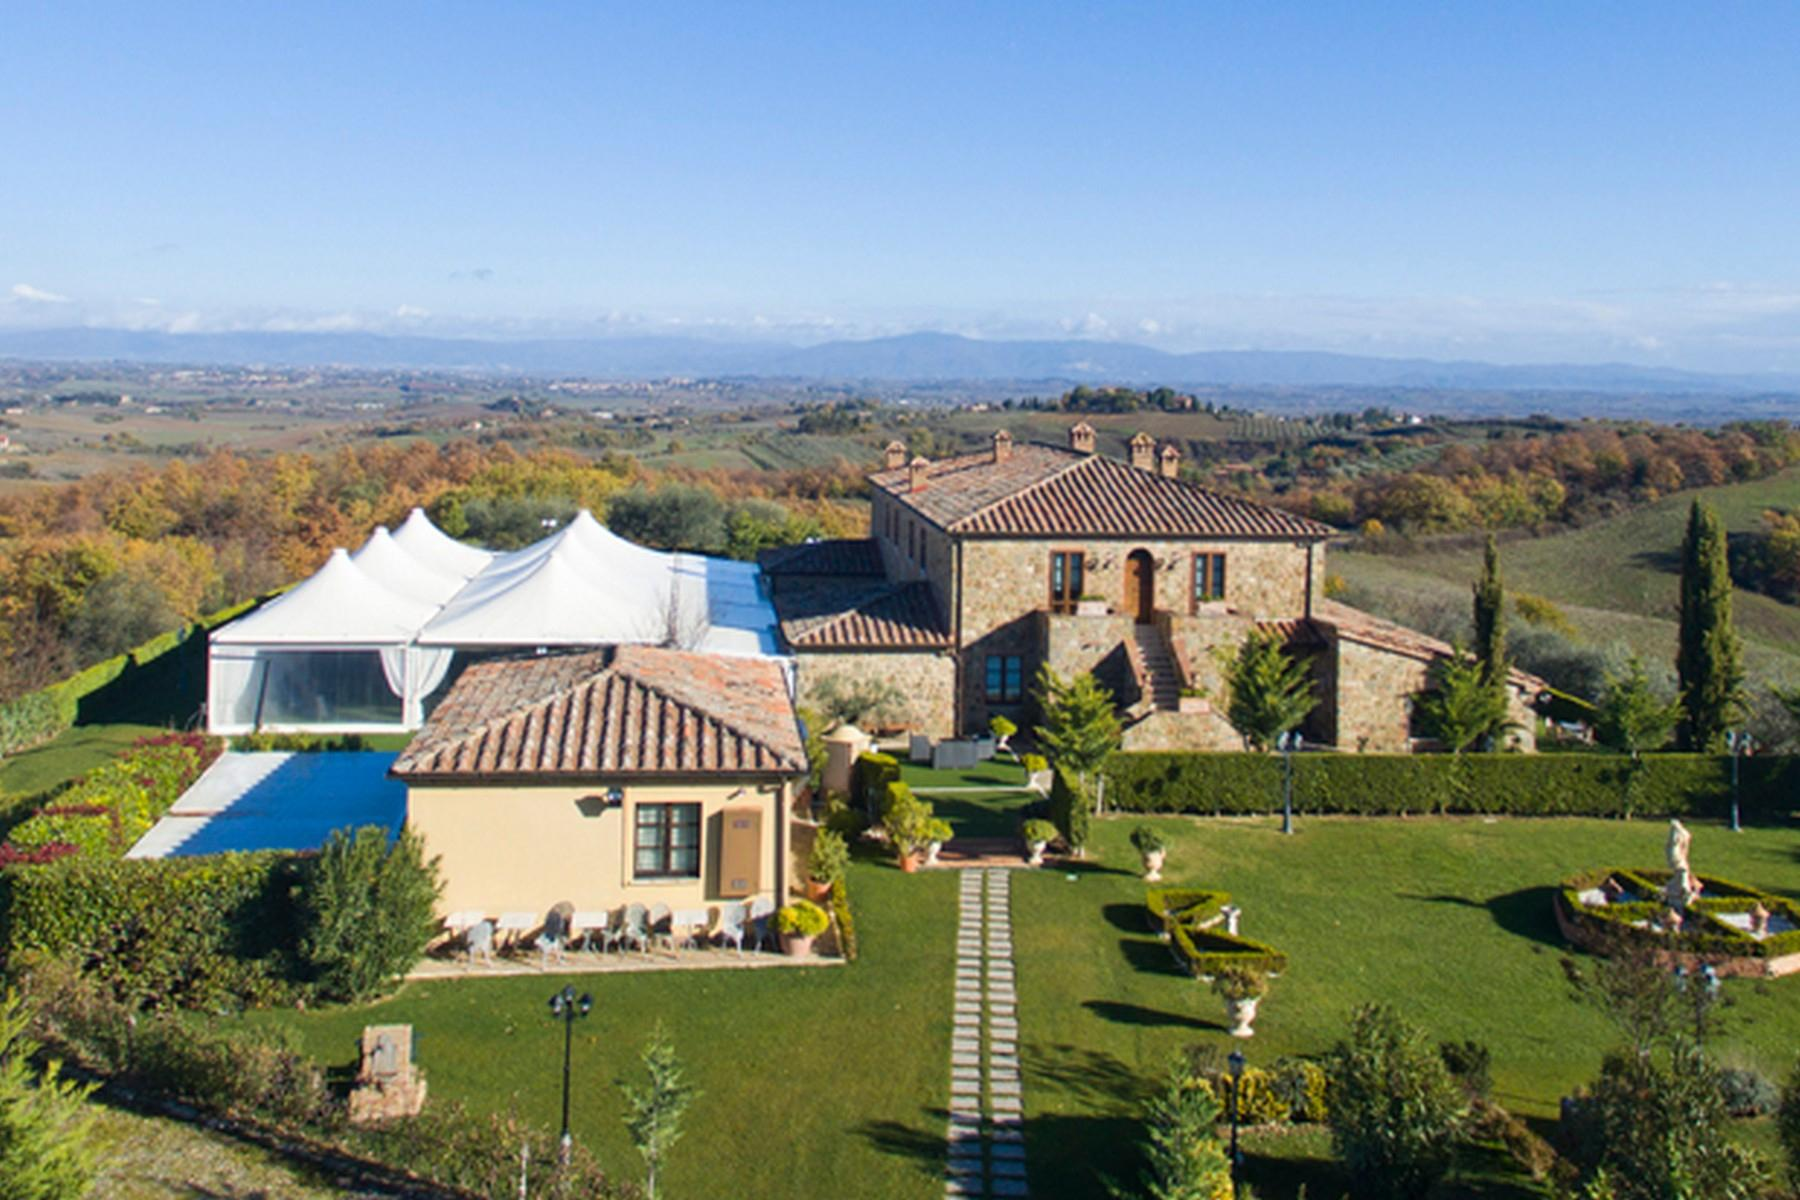 Beautiful Boutique Hotel with Restaurant and SPA in the hills of Torrita di Siena - 14